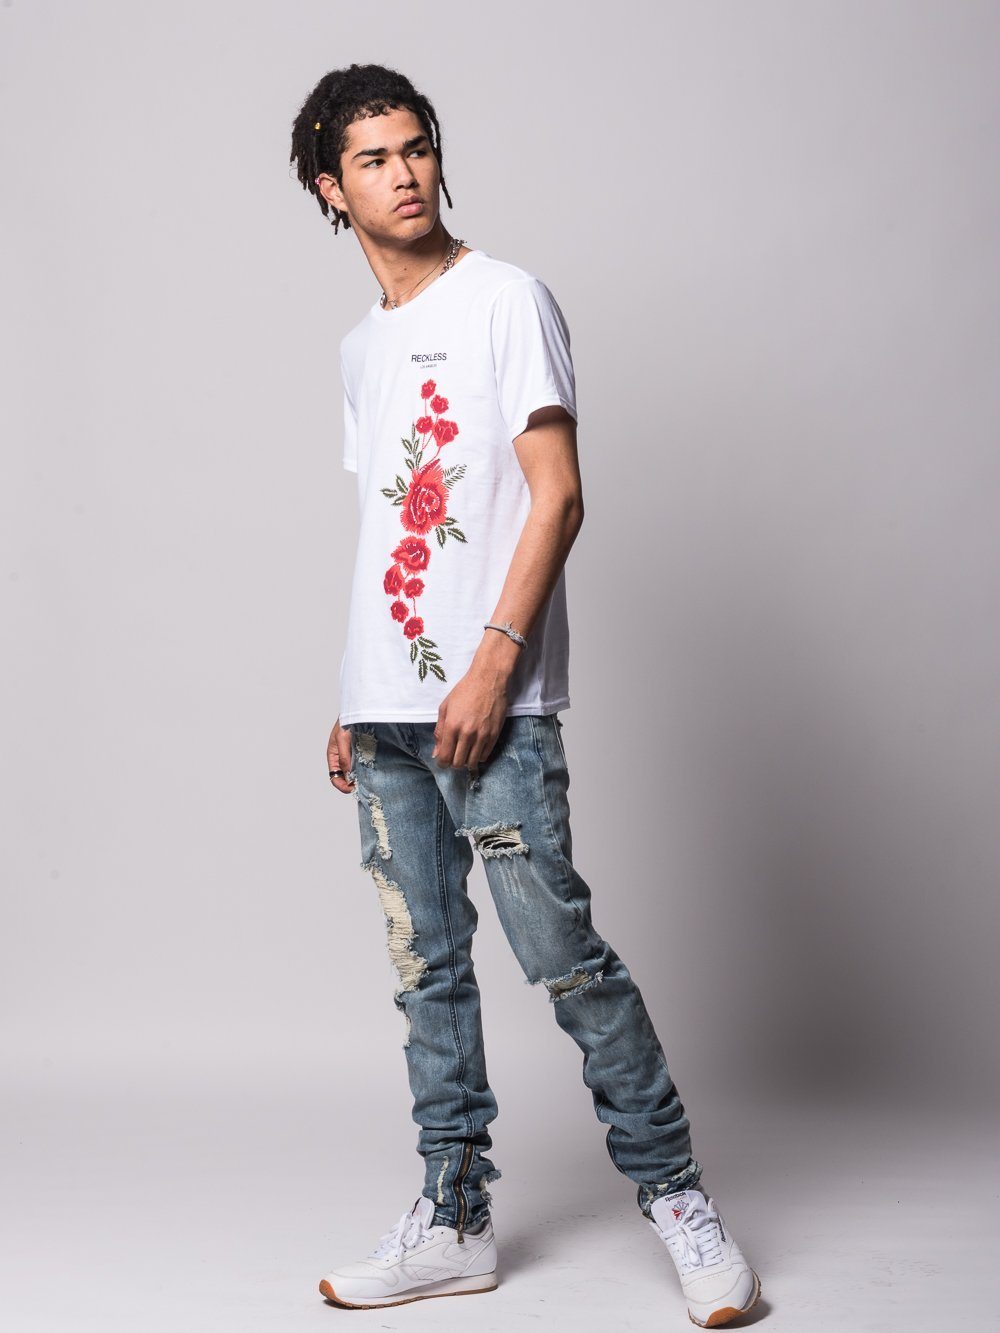 Young and Reckless Mens - Tees - Graphic Tee Classic Rosebud Tee - White